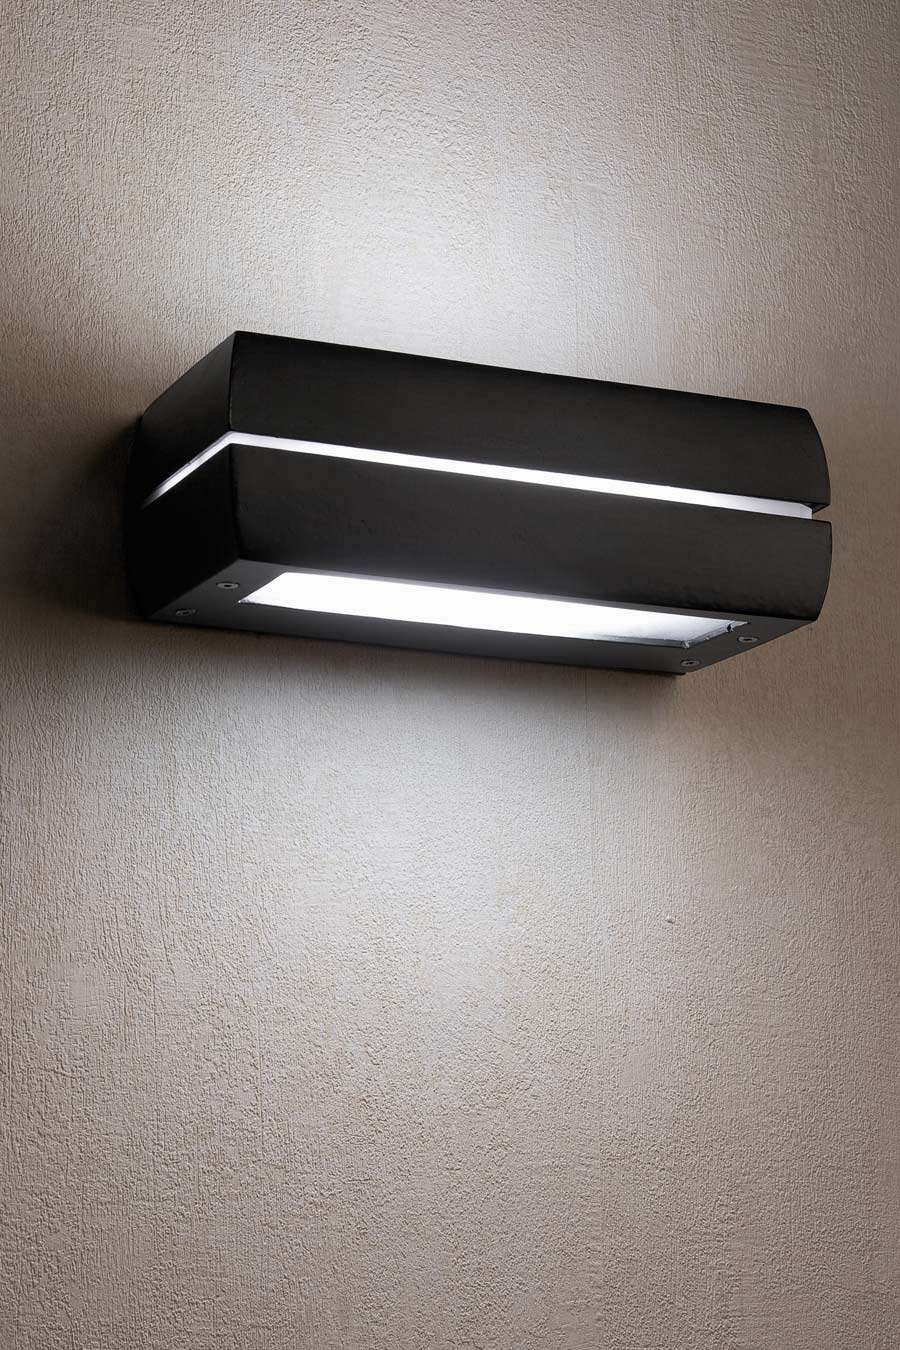 Dragma dark grey aluminium exterior wall light Faro - Ref. 10030165